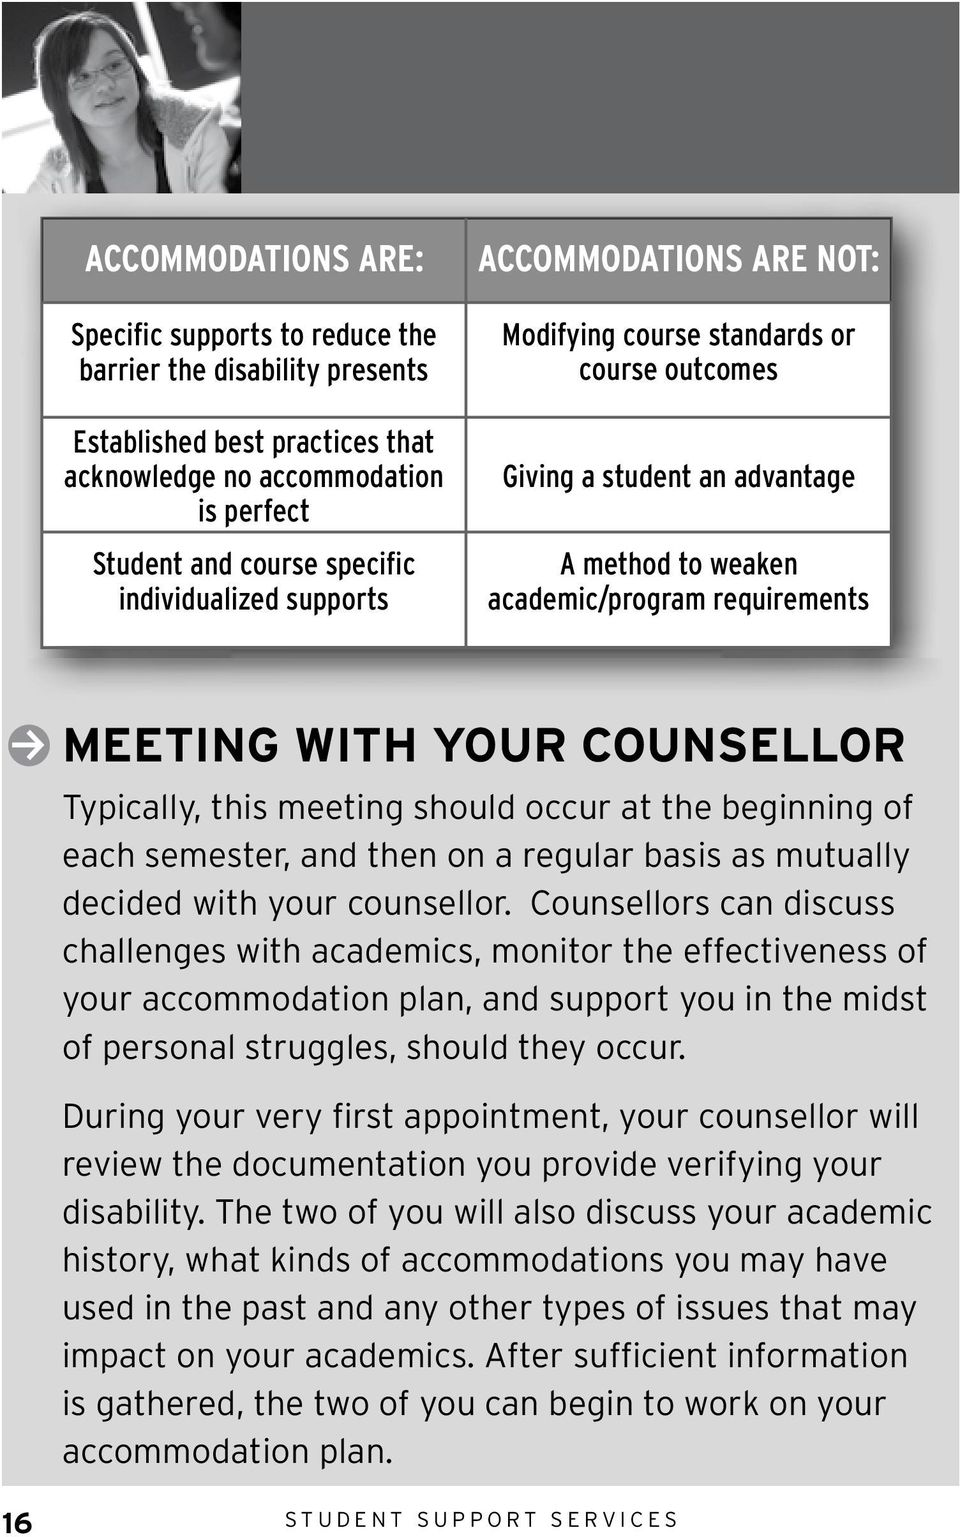 this meeting should occur at the beginning of each semester, and then on a regular basis as mutually decided with your counsellor.